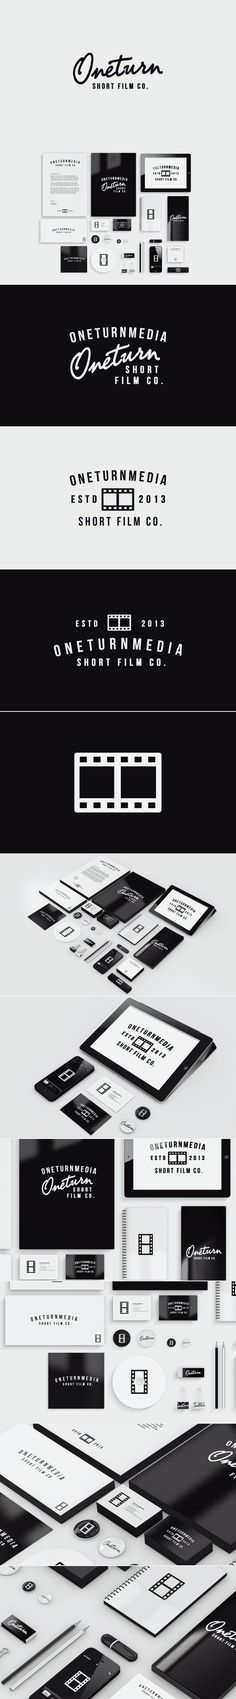 OneTurnMedia #Corporate #Identity #Stationery #Graphic #Design